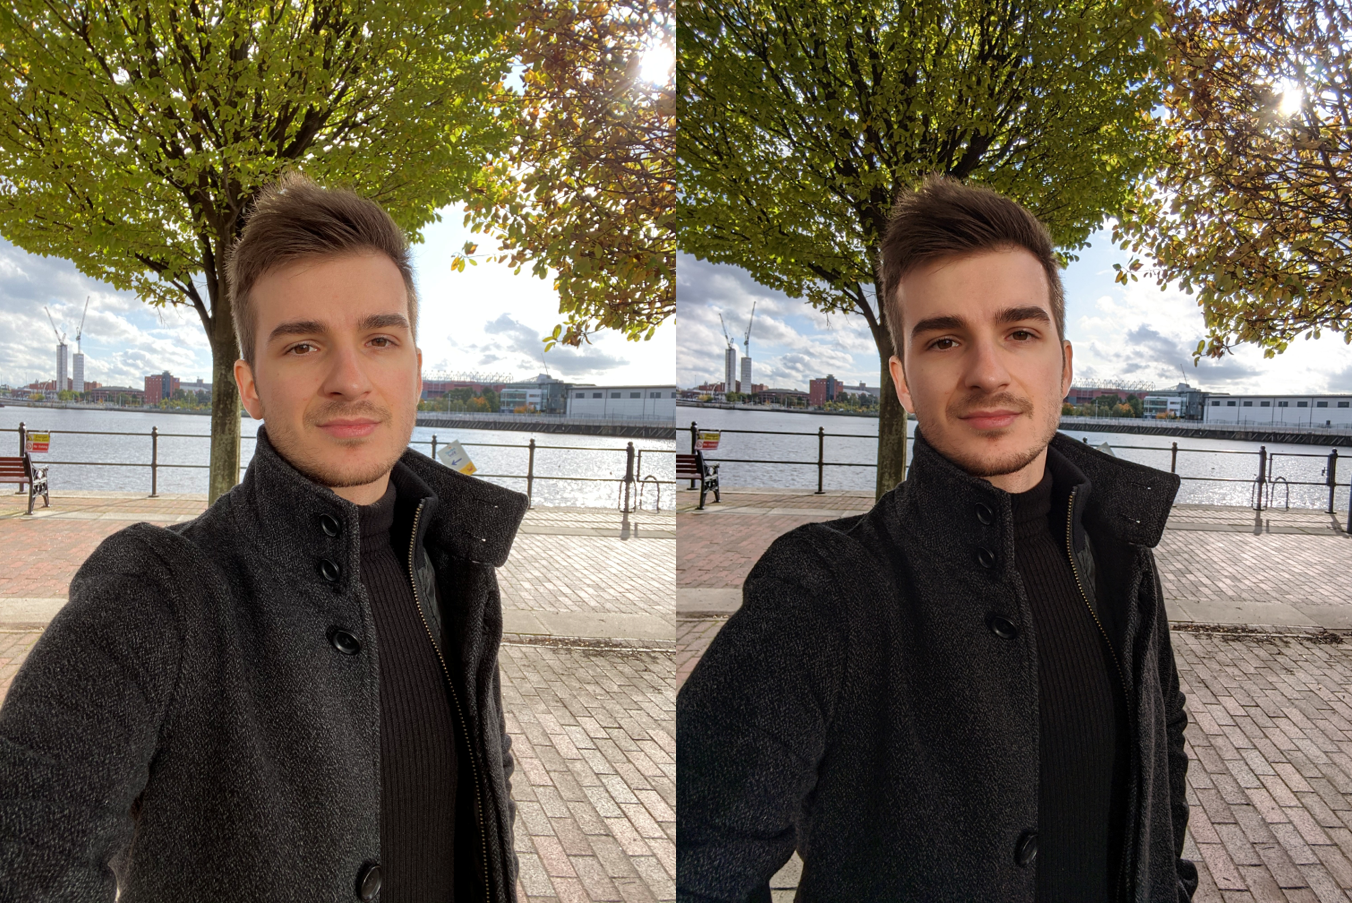 A sample of the wide front facing camera, the iPhone 11 Pro Max on the Left and the Pixel 4XL on the right